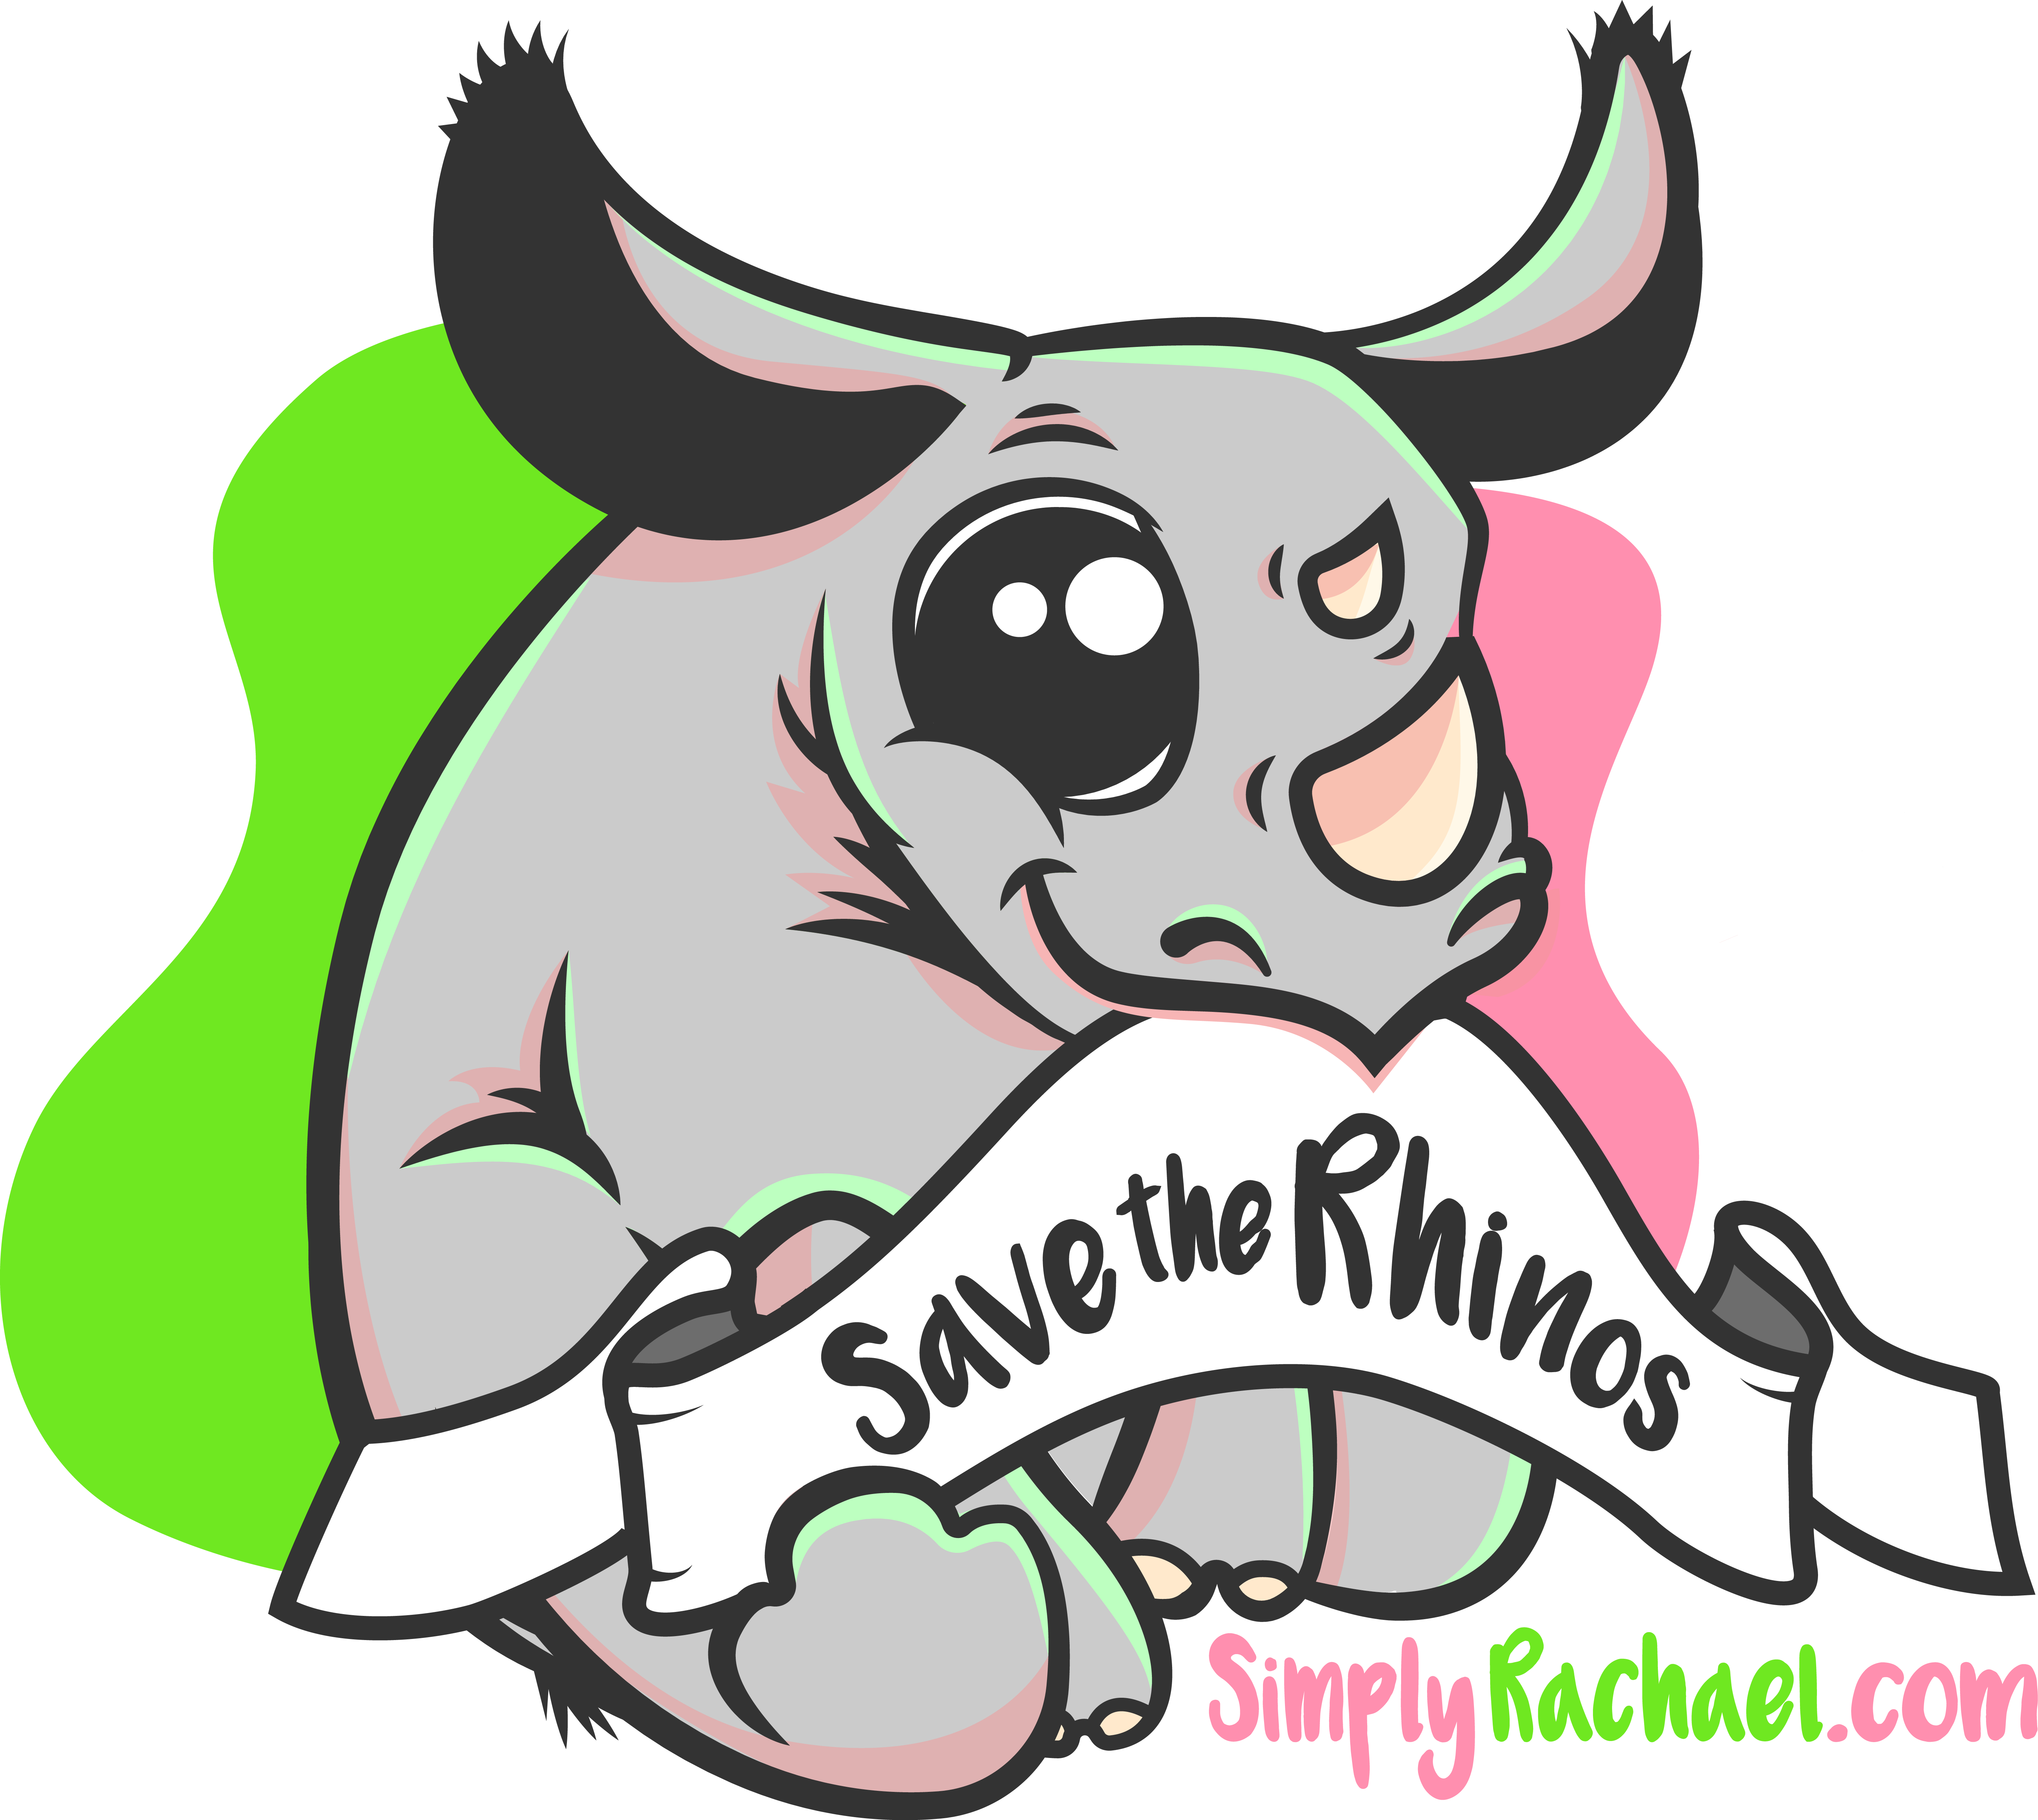 Simply rachael is creating. Ox clipart horns